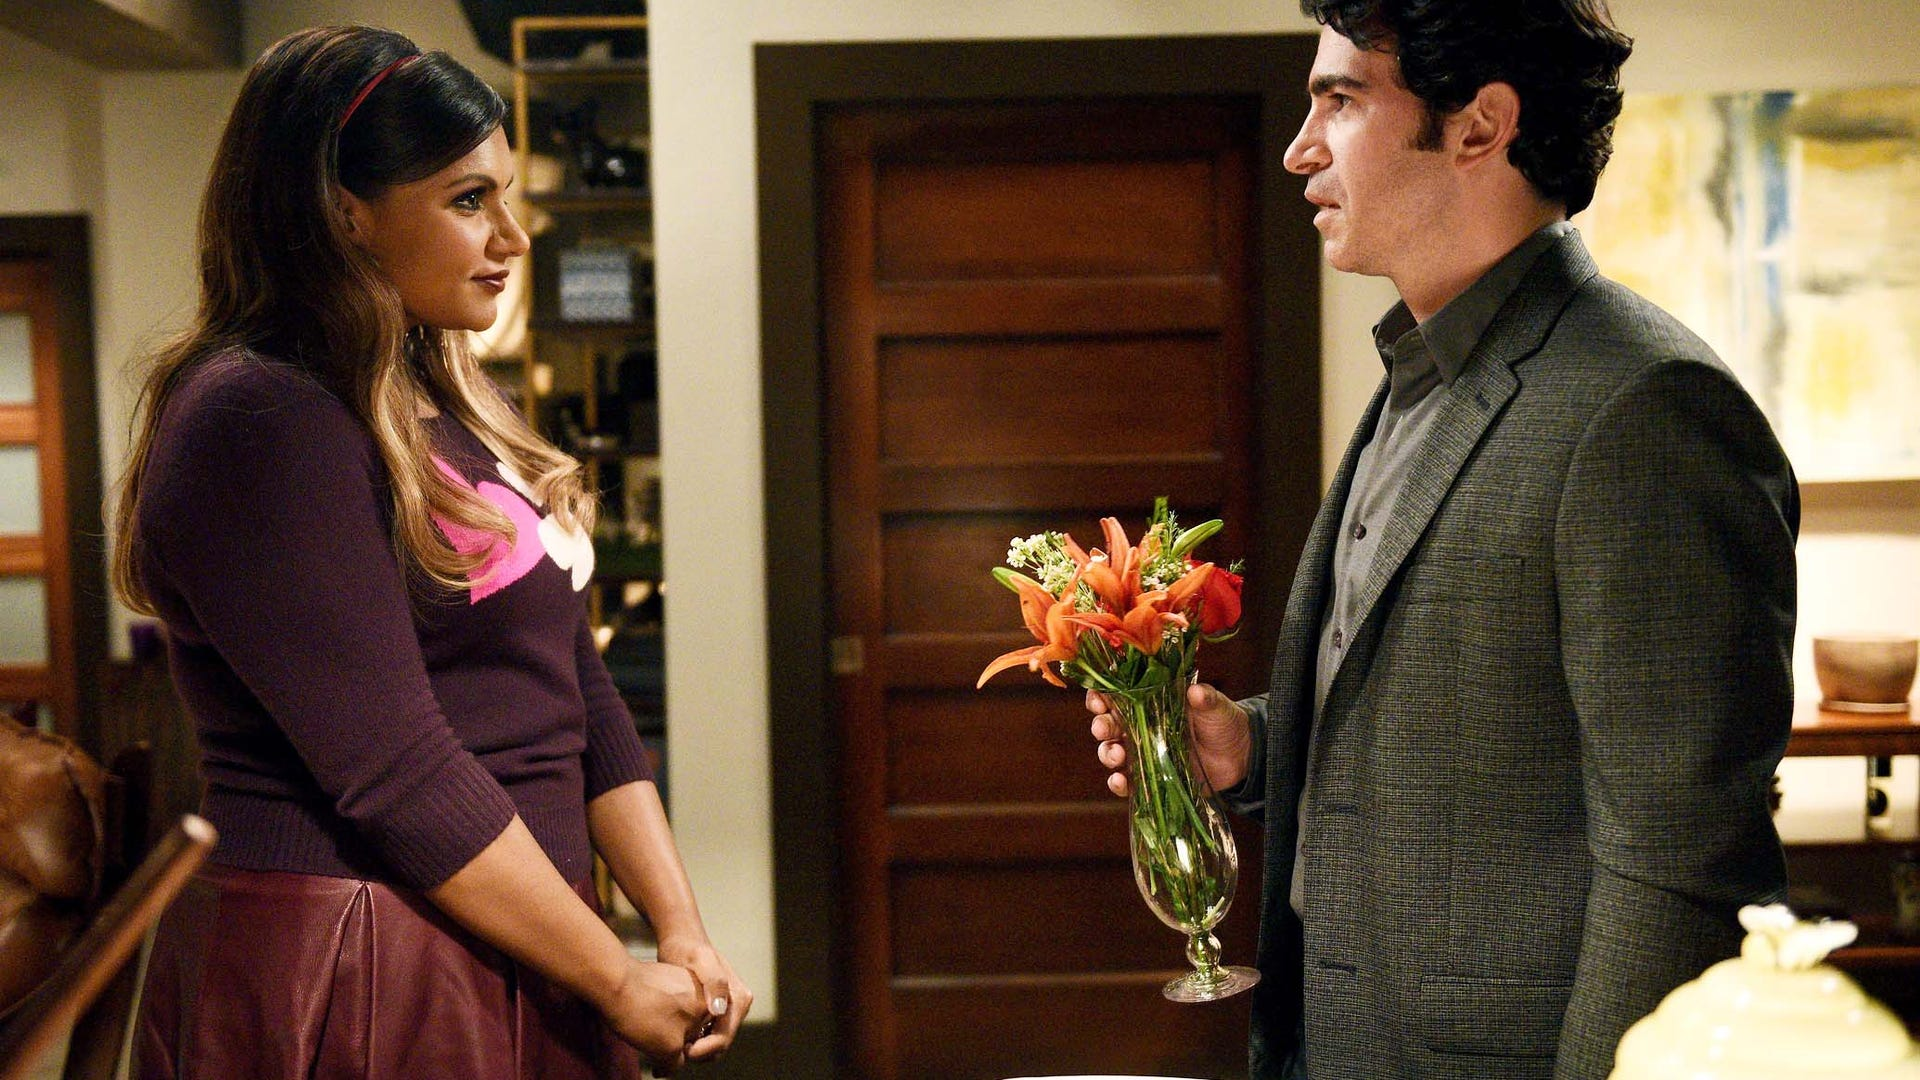 Mindy Kaling and Chris Messina, The Mindy Project